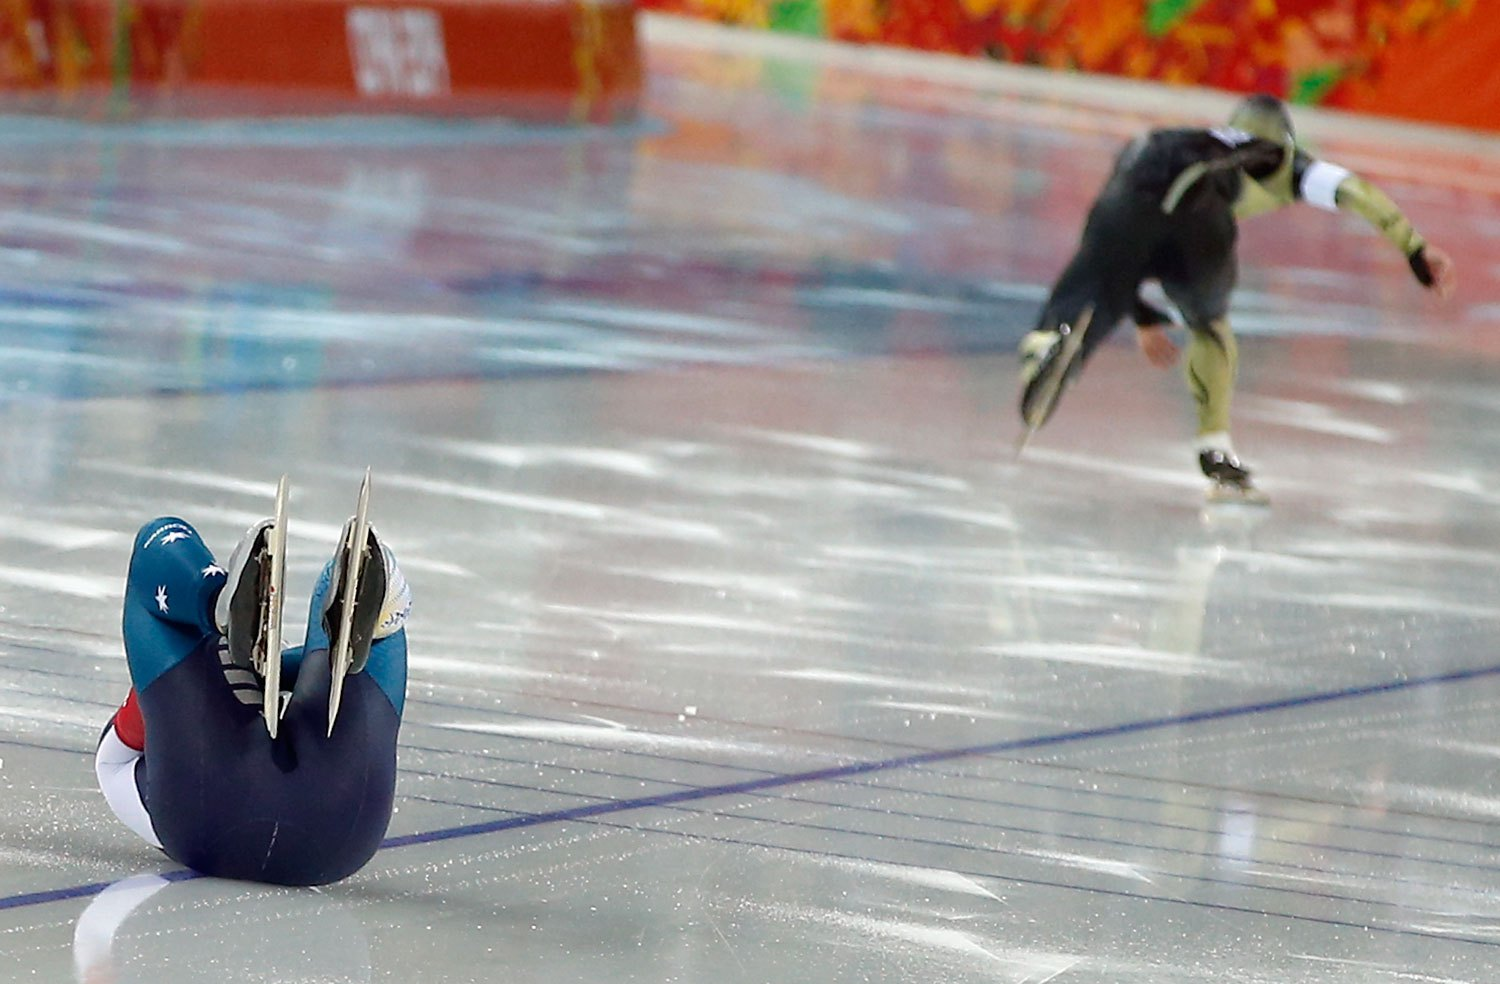 Australia's Daniel Greig, left, crashes in the first heat of his men's 500-meter speedskating race against Yuya Oikawa of Japan at the Adler Arena Skating Center at the 2014 Winter Olympics, Feb. 10, 2014, in Sochi.